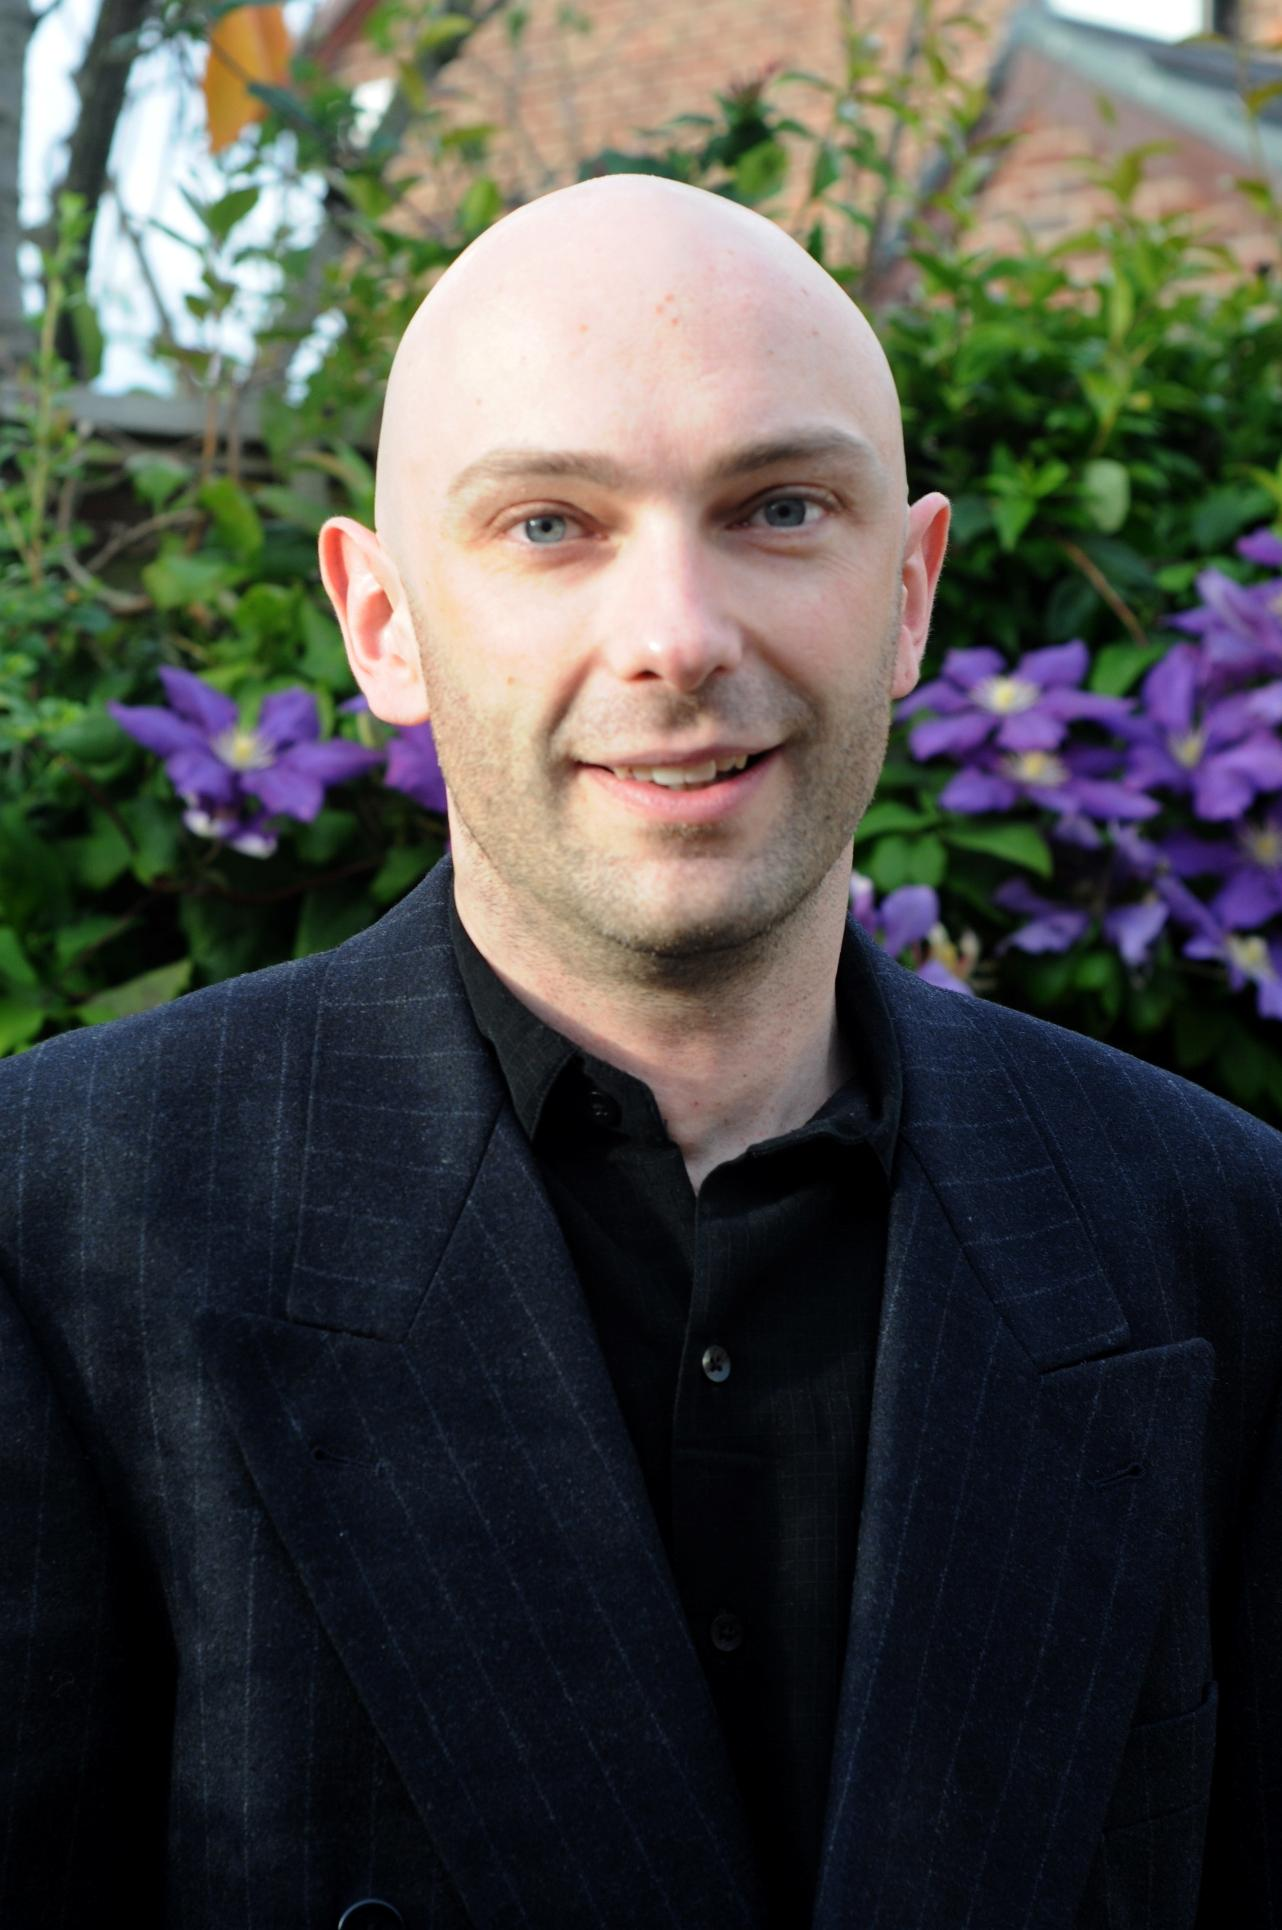 Shaun Attwood will be talking to year 10 students at Wolverley CE Secondary School about the potential pitfalls of getting involved in drugs and crime.